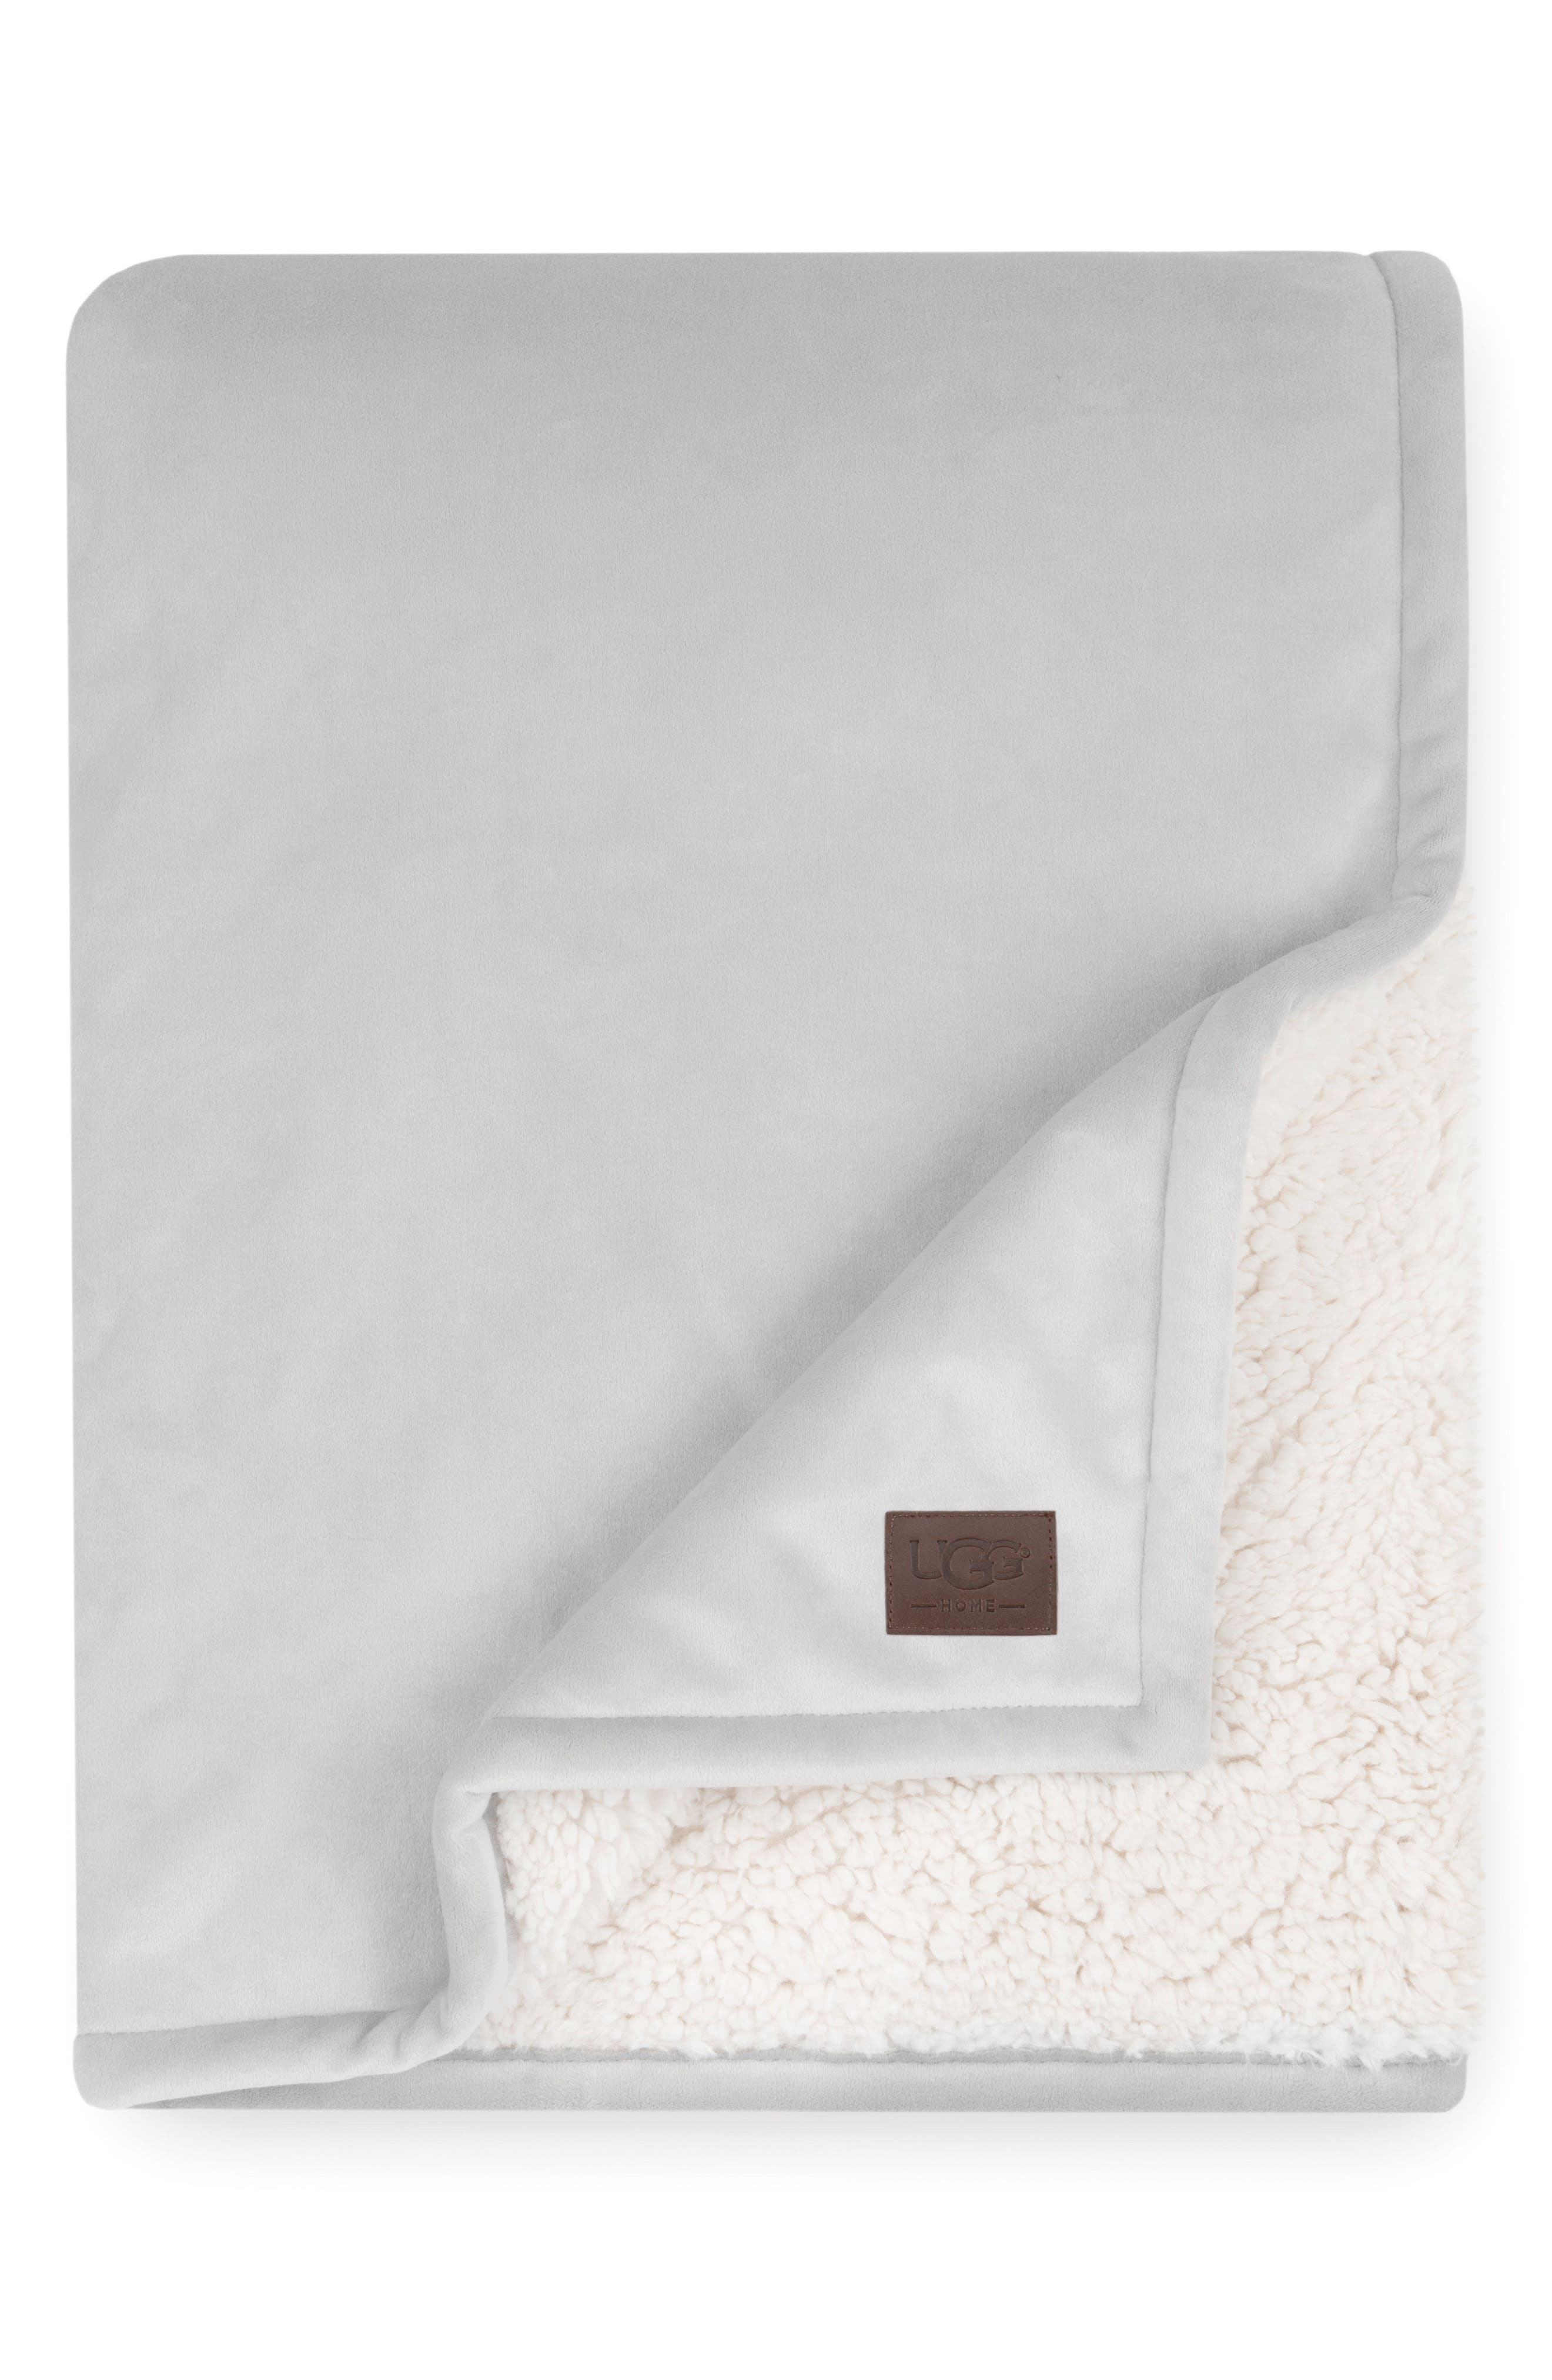 Alternate Image 1 Selected - UGG® Bliss Faux Shearling Throw